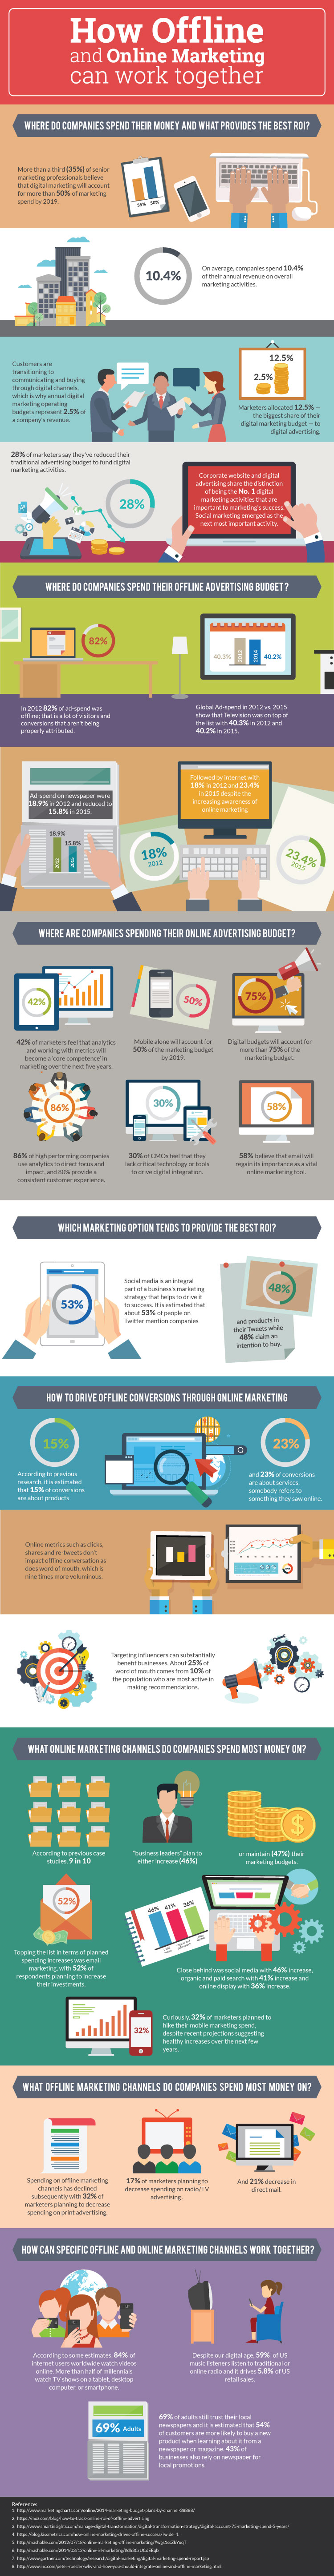 how offline and online marketing can work together